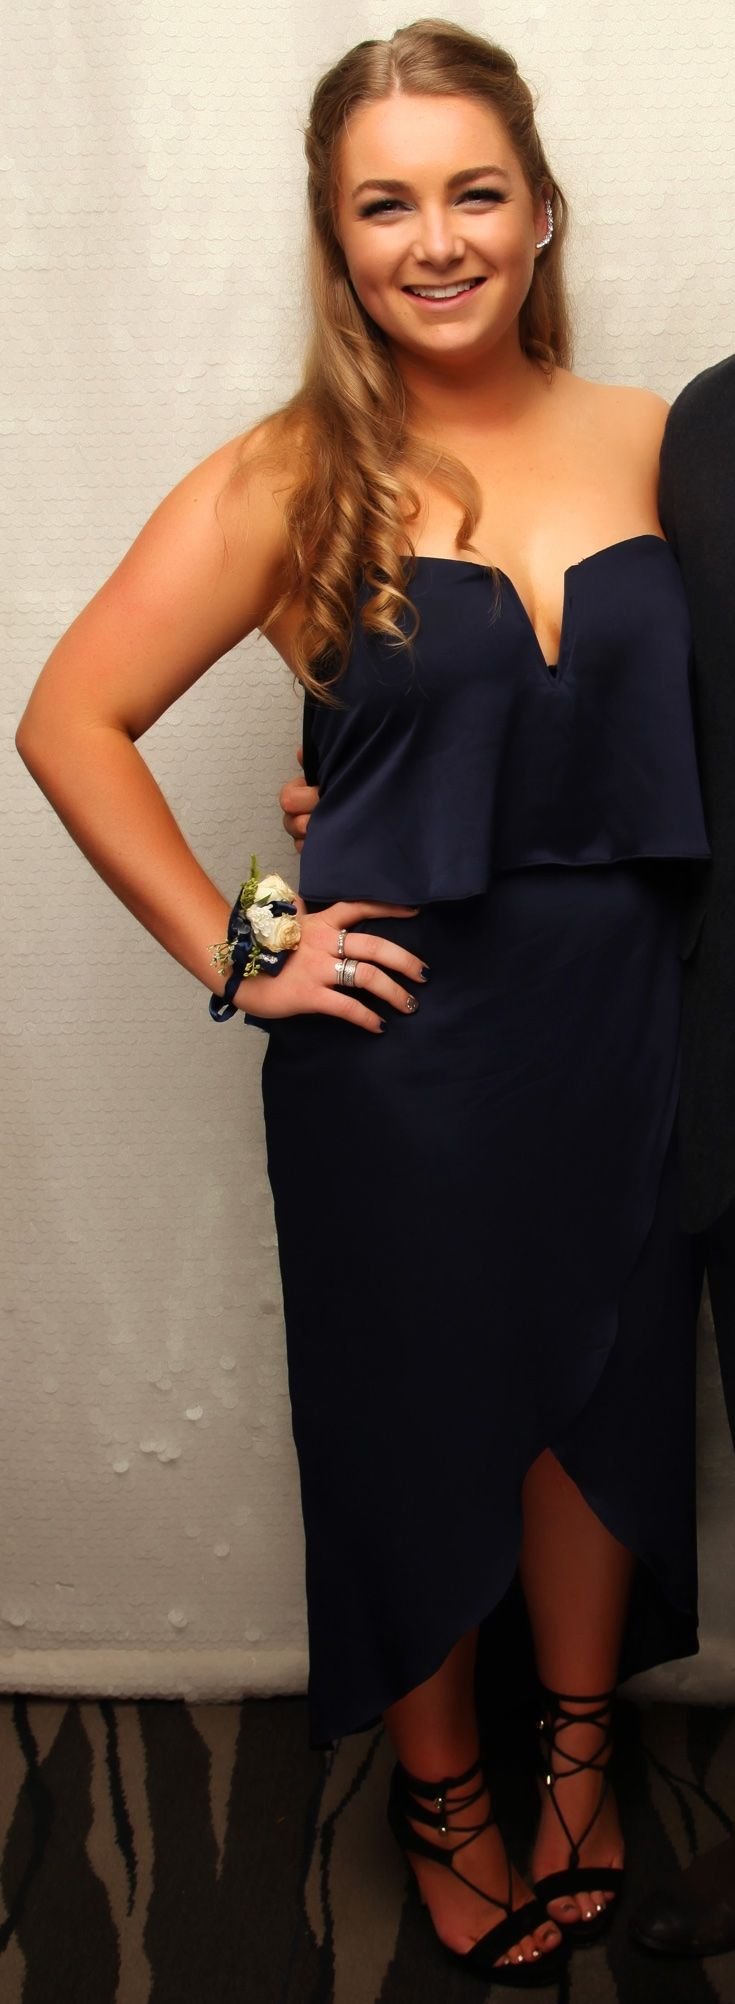 St Kentigern College Ball 2016. Love this strapless look! www.whitedoor.co.nz